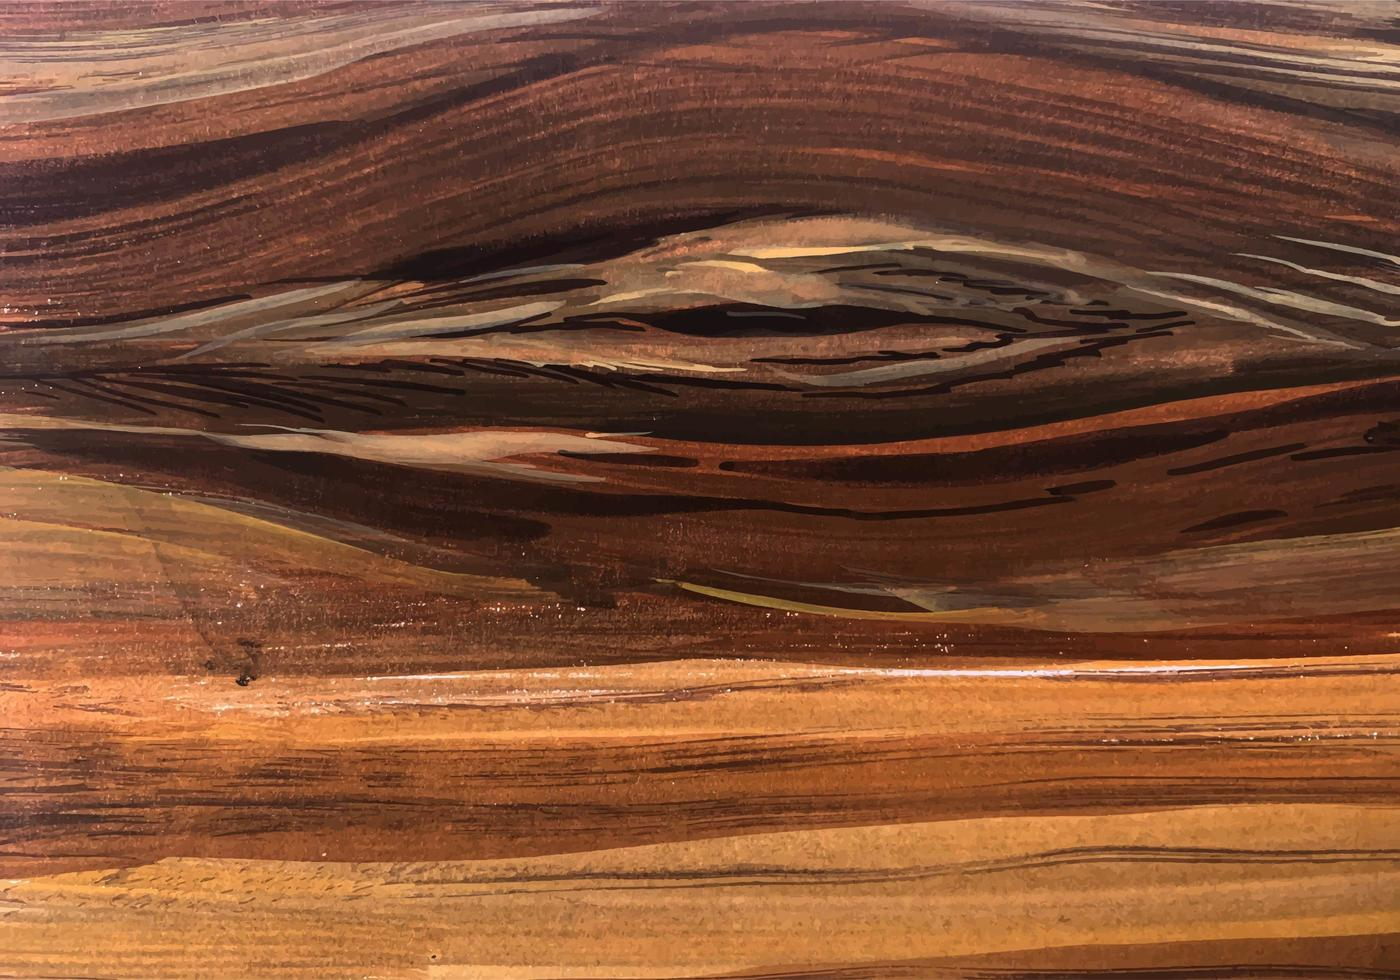 Abstract Cedar Knot Swirl Wood Texture vector